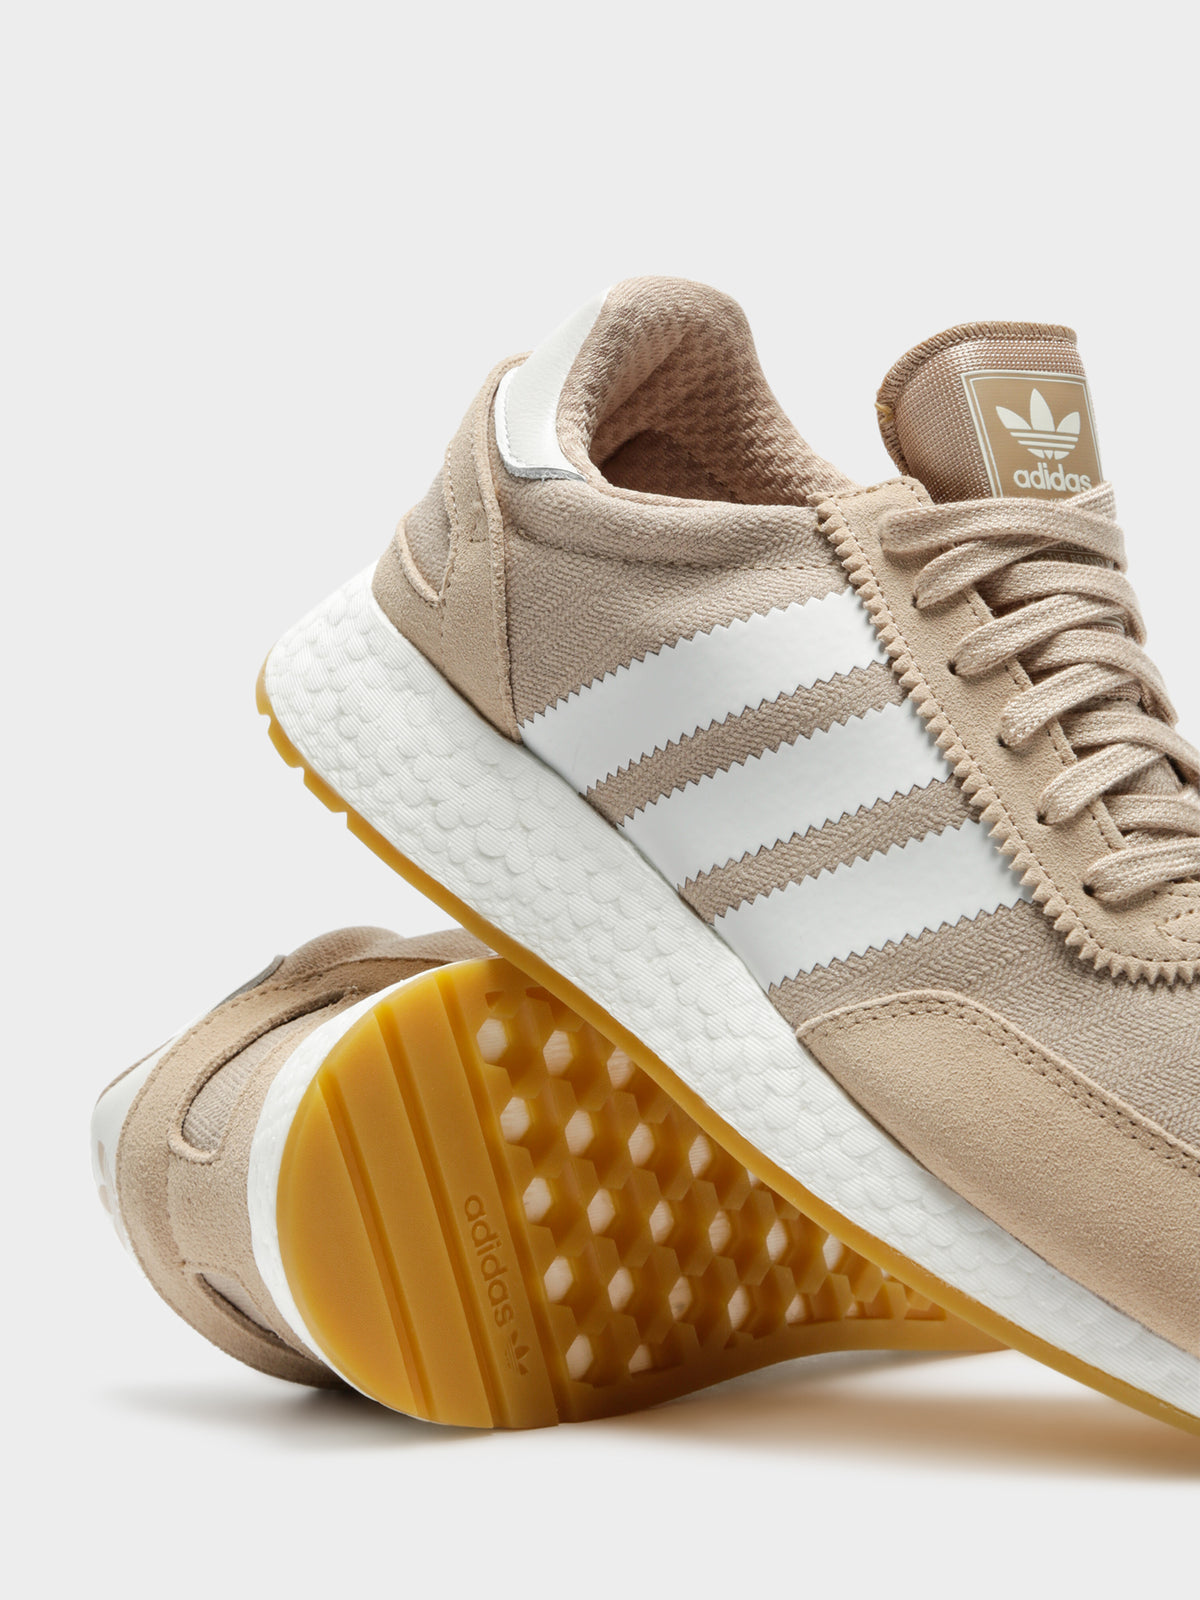 Womens I-5923 Sneakers in Nude